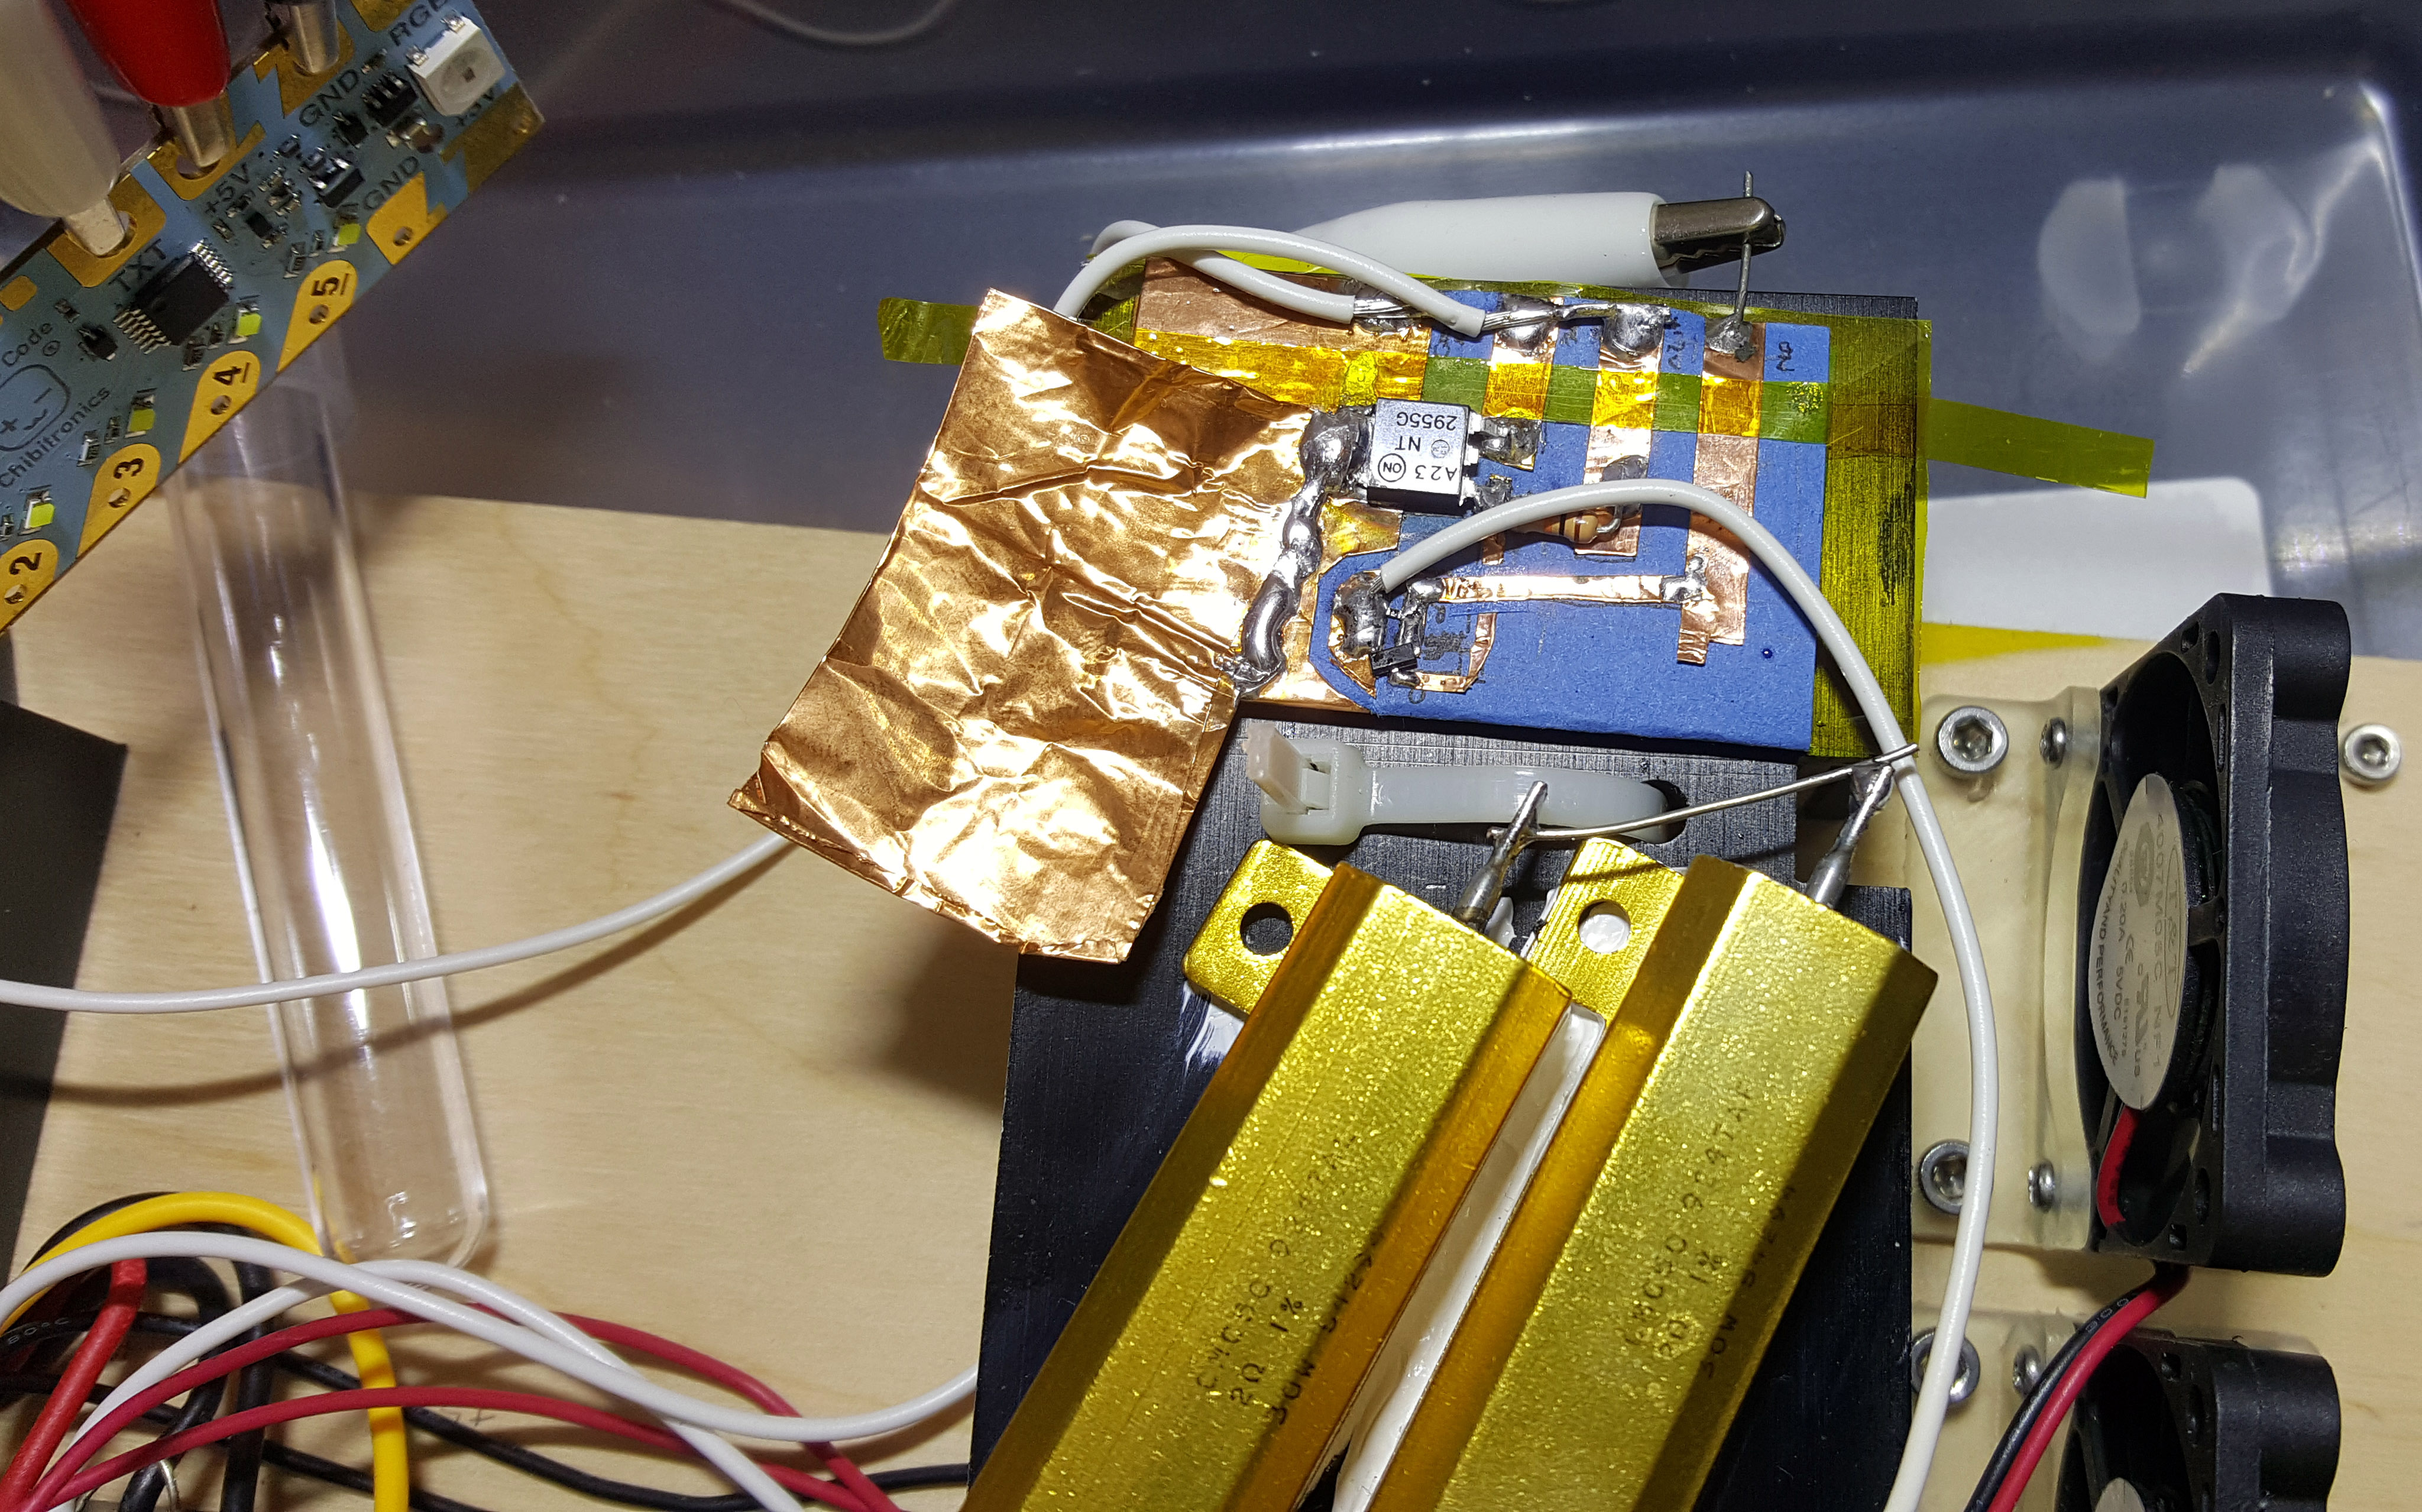 Chibitronics Bunnies Blog Circuit Can Be Used As A Standalone Voice Recorder View Thats 12a Power Transistor And This Heater Control Use Much Of That Ampacity Additional Copper Foil Was Soldered On For Extra Heat Sinking